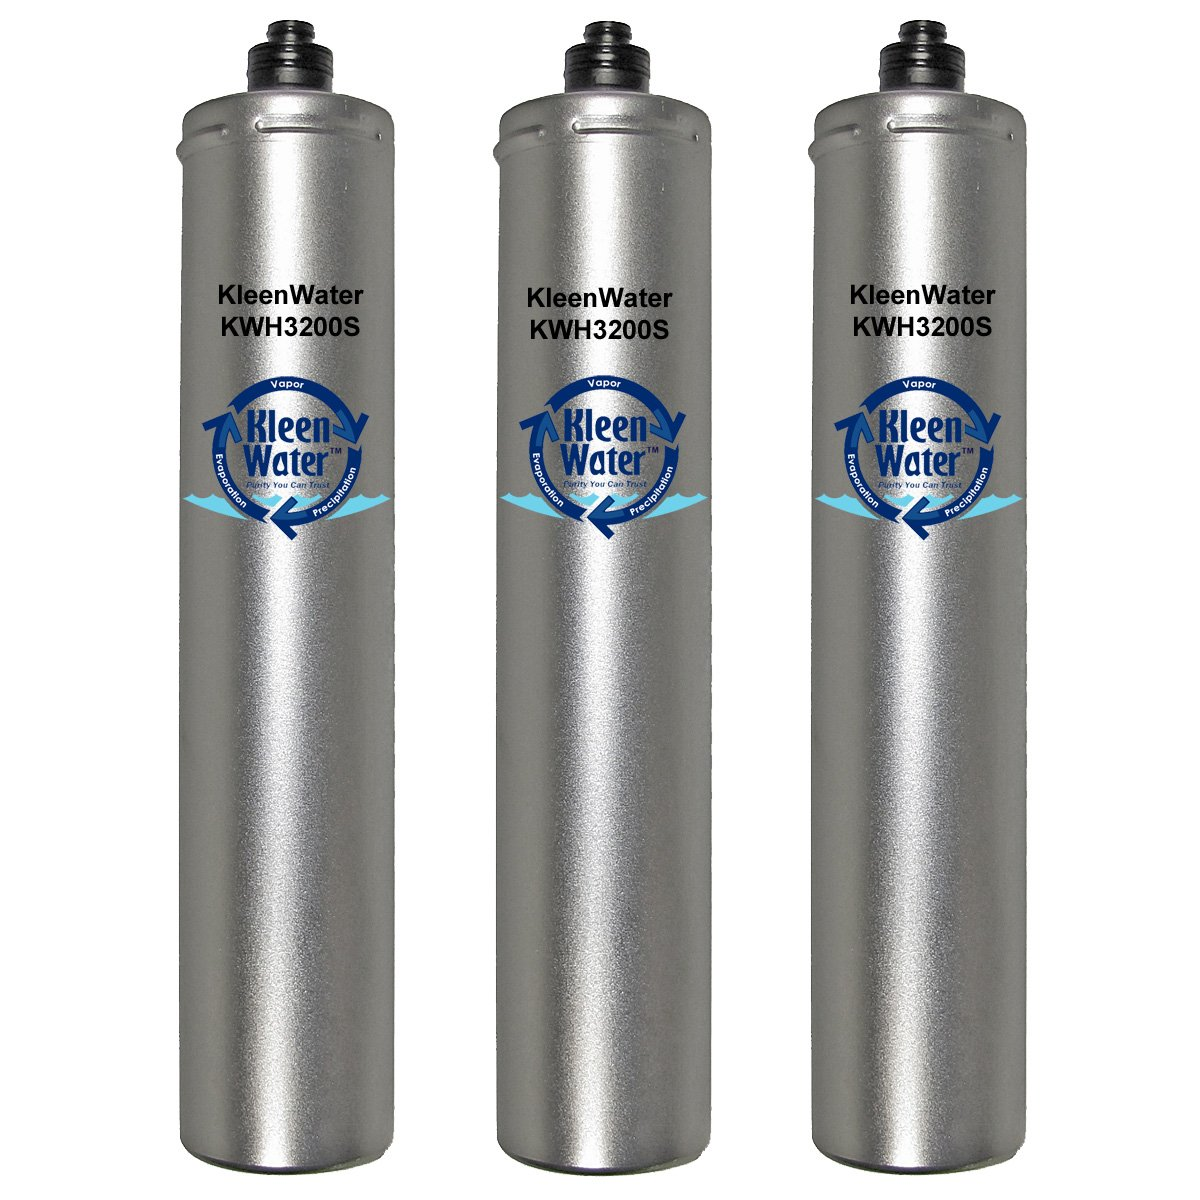 Hoshizaki 965511, 9655-11, 4HF-H, 4HF-C, 4HC-H and 9326-11H Compatible Filters, KleenWater Brand KWH3200S, Ice Machine, Food Service, Replacement Water Filter Cartridges, Set of 3